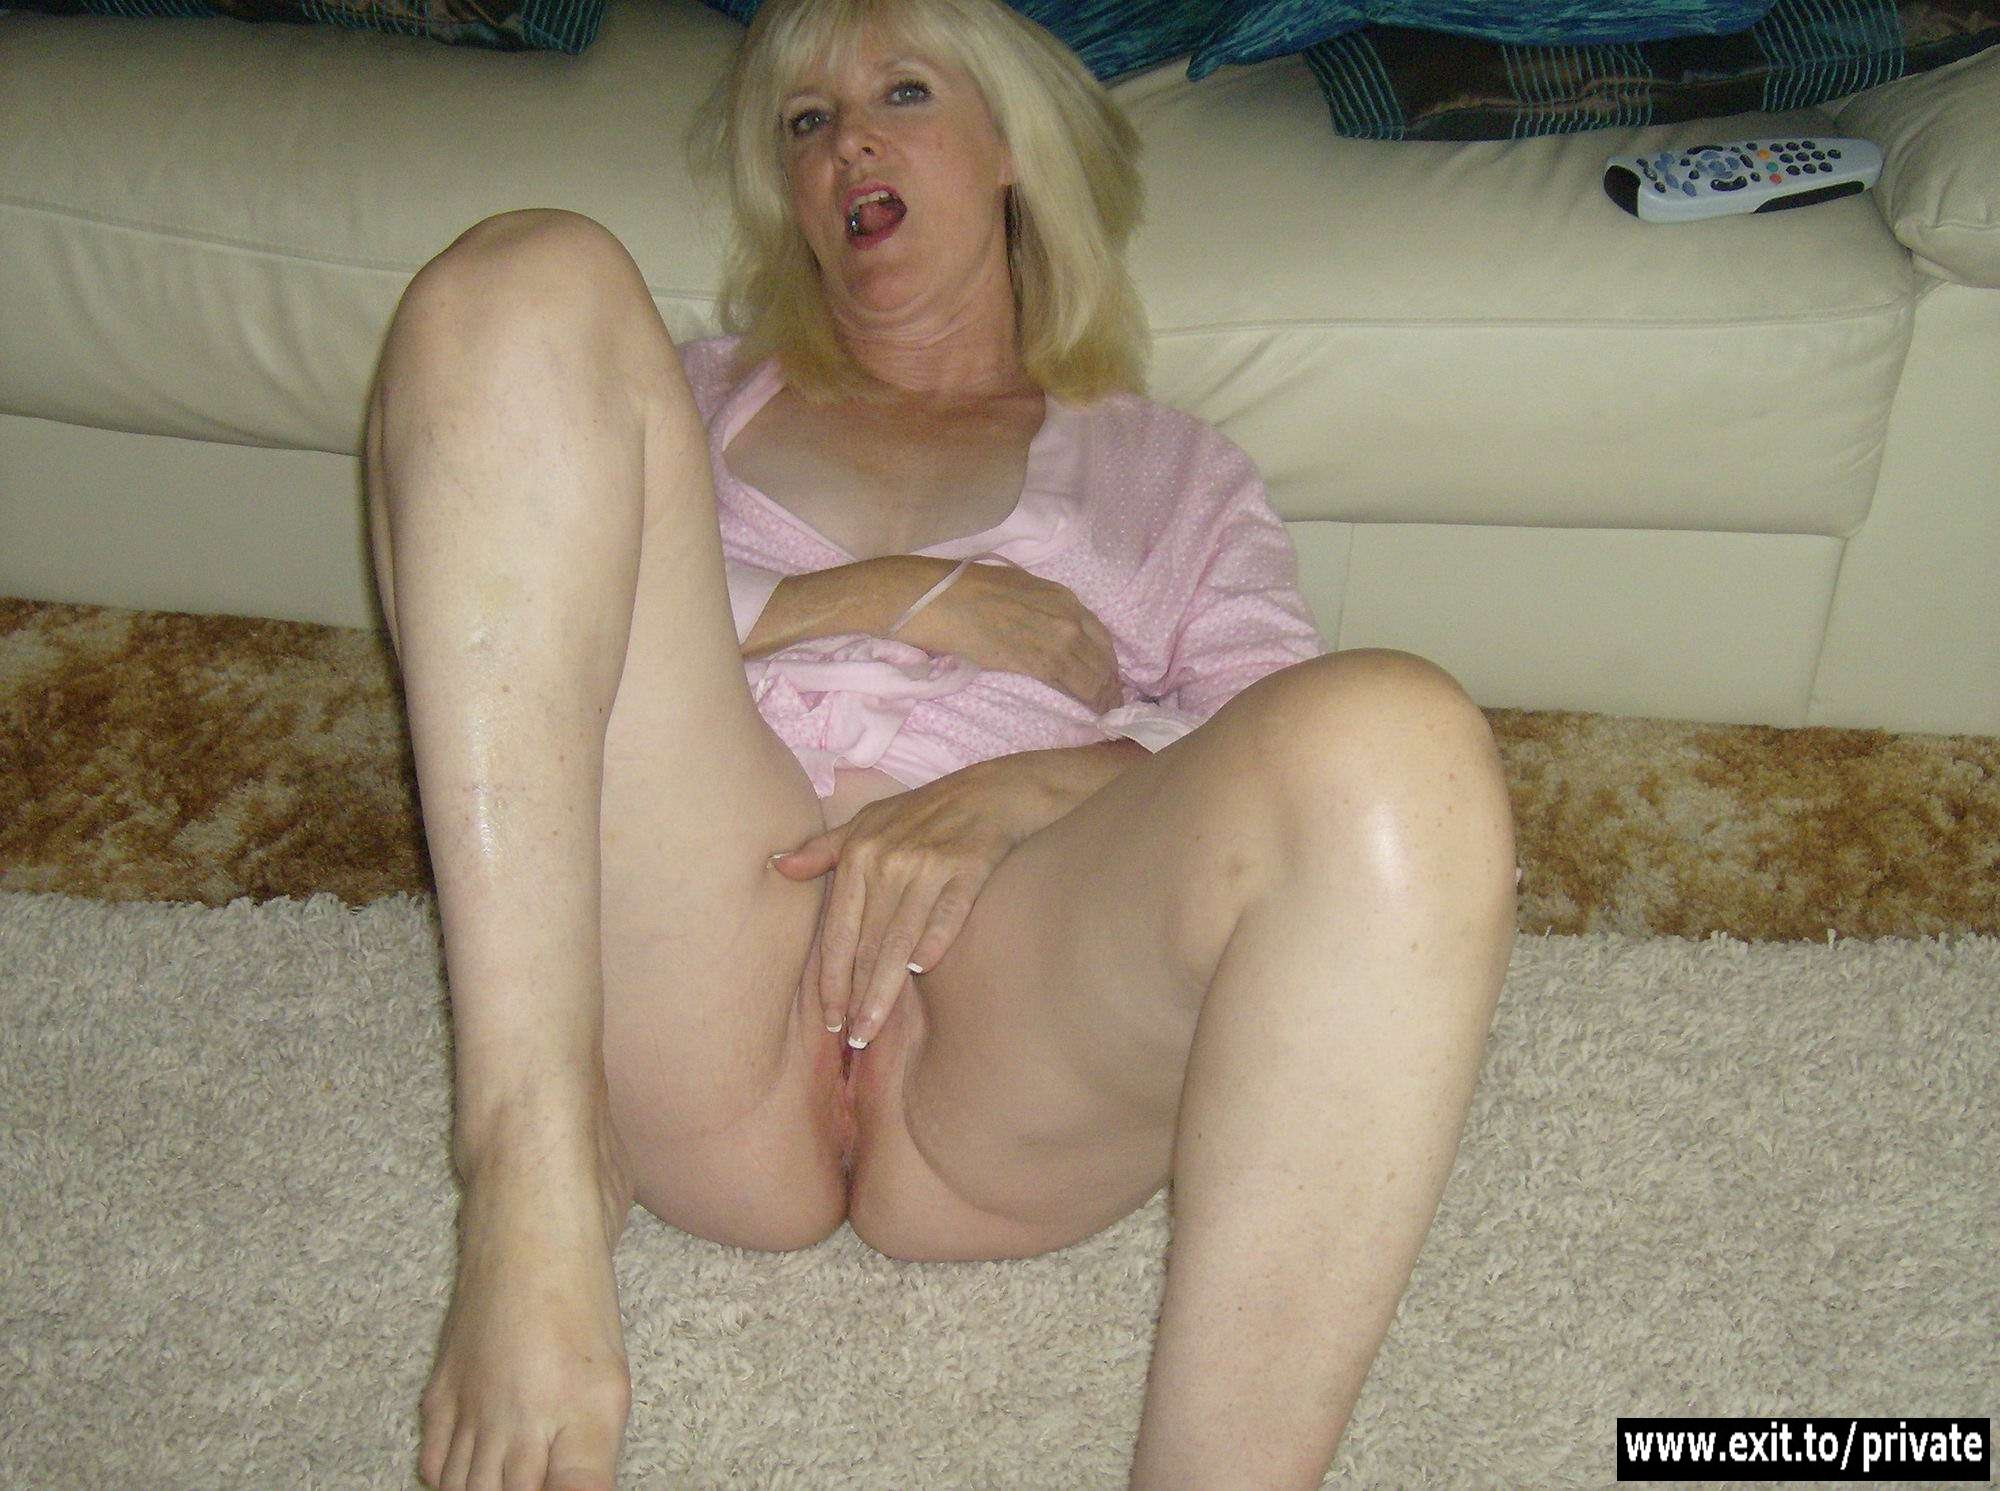 70 Porn see mature lady 70 porn in hd photo. daily updates - www